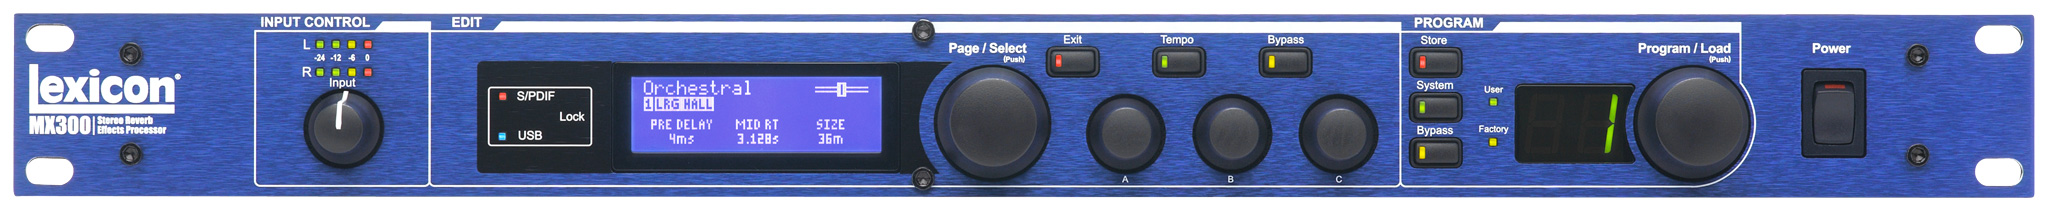 mx300 lexicon pro legendary reverb and effects rh lexiconpro com Lexicon MX200 Tutorial Lexicon MX200